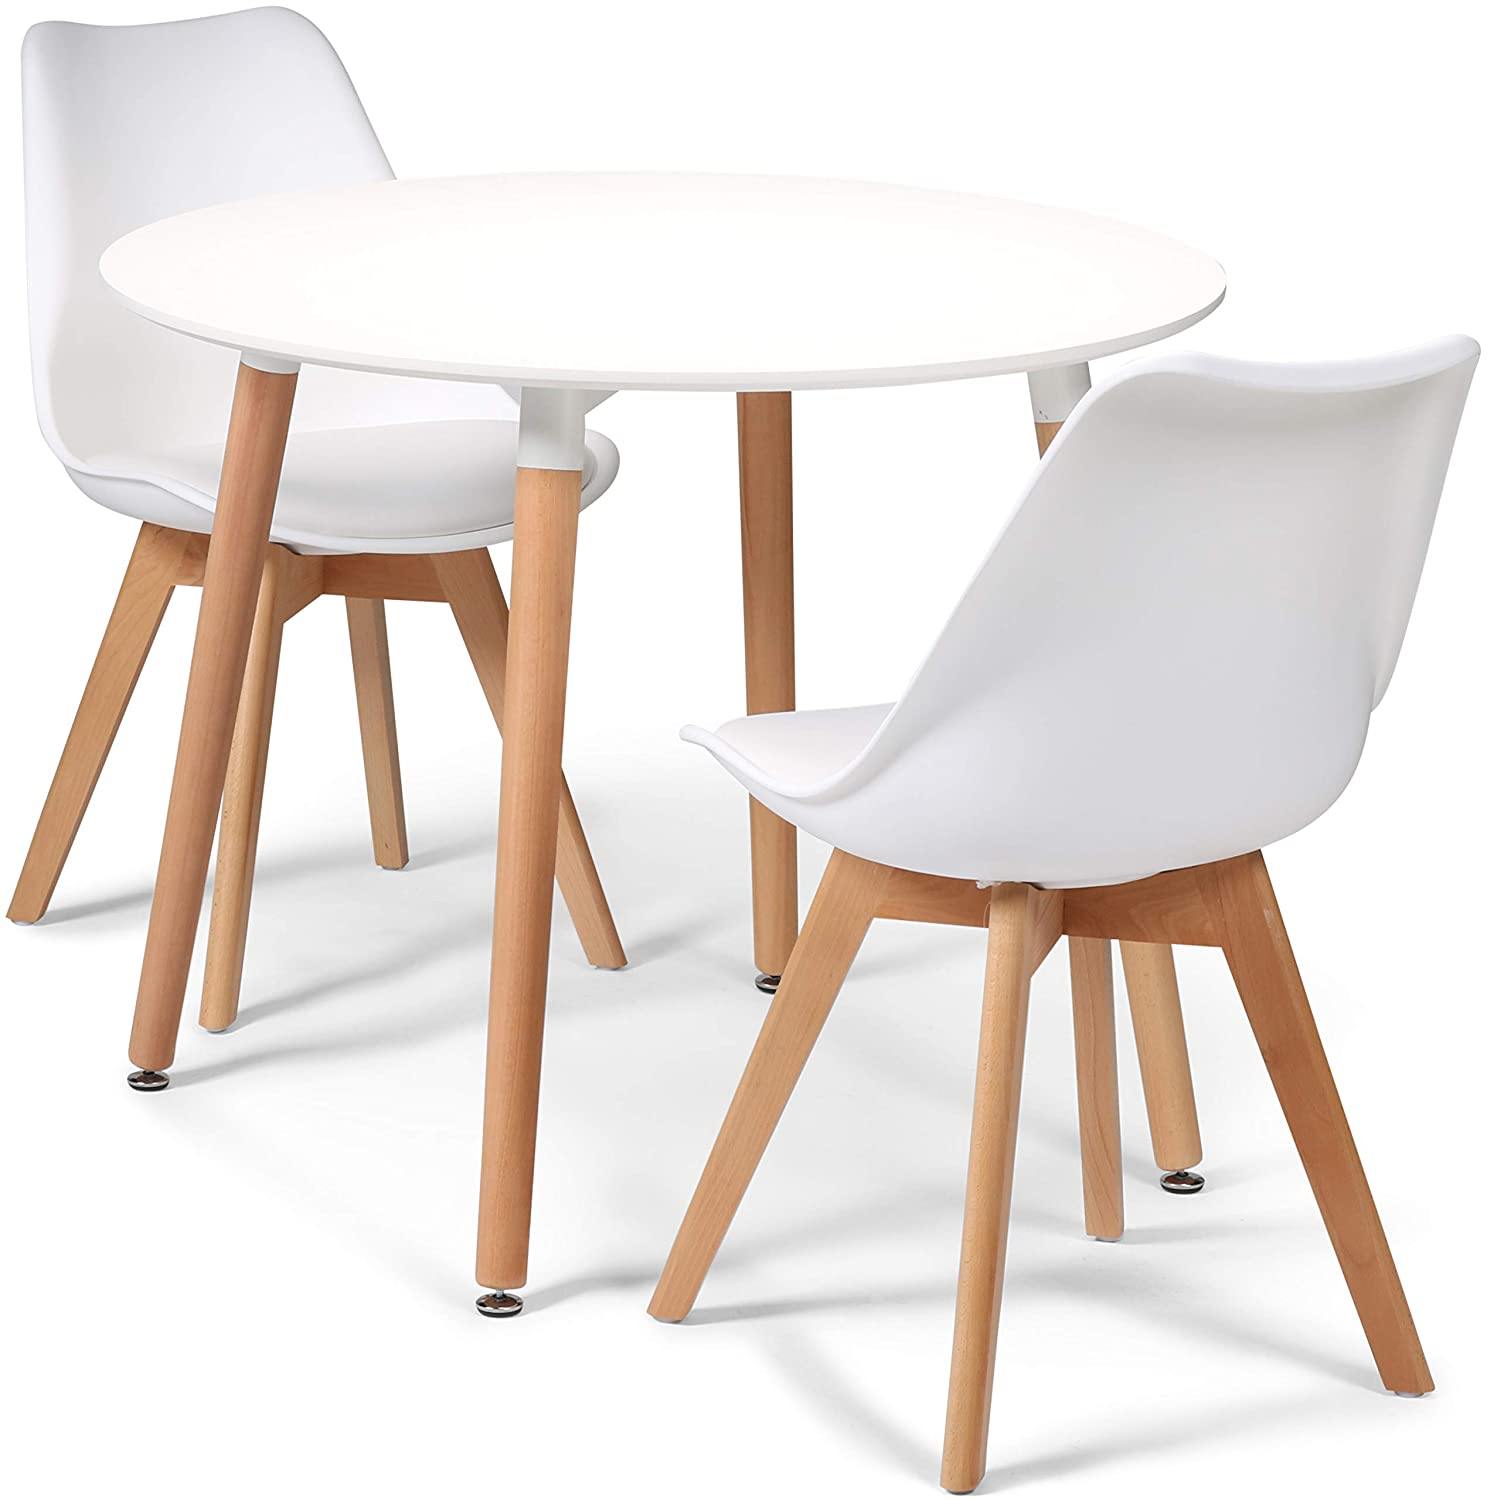 Your Price Furniture.com Toulouse Tulip Eiffel Style Dining Set - White 90cms Small Round Table And 2 White Chairs